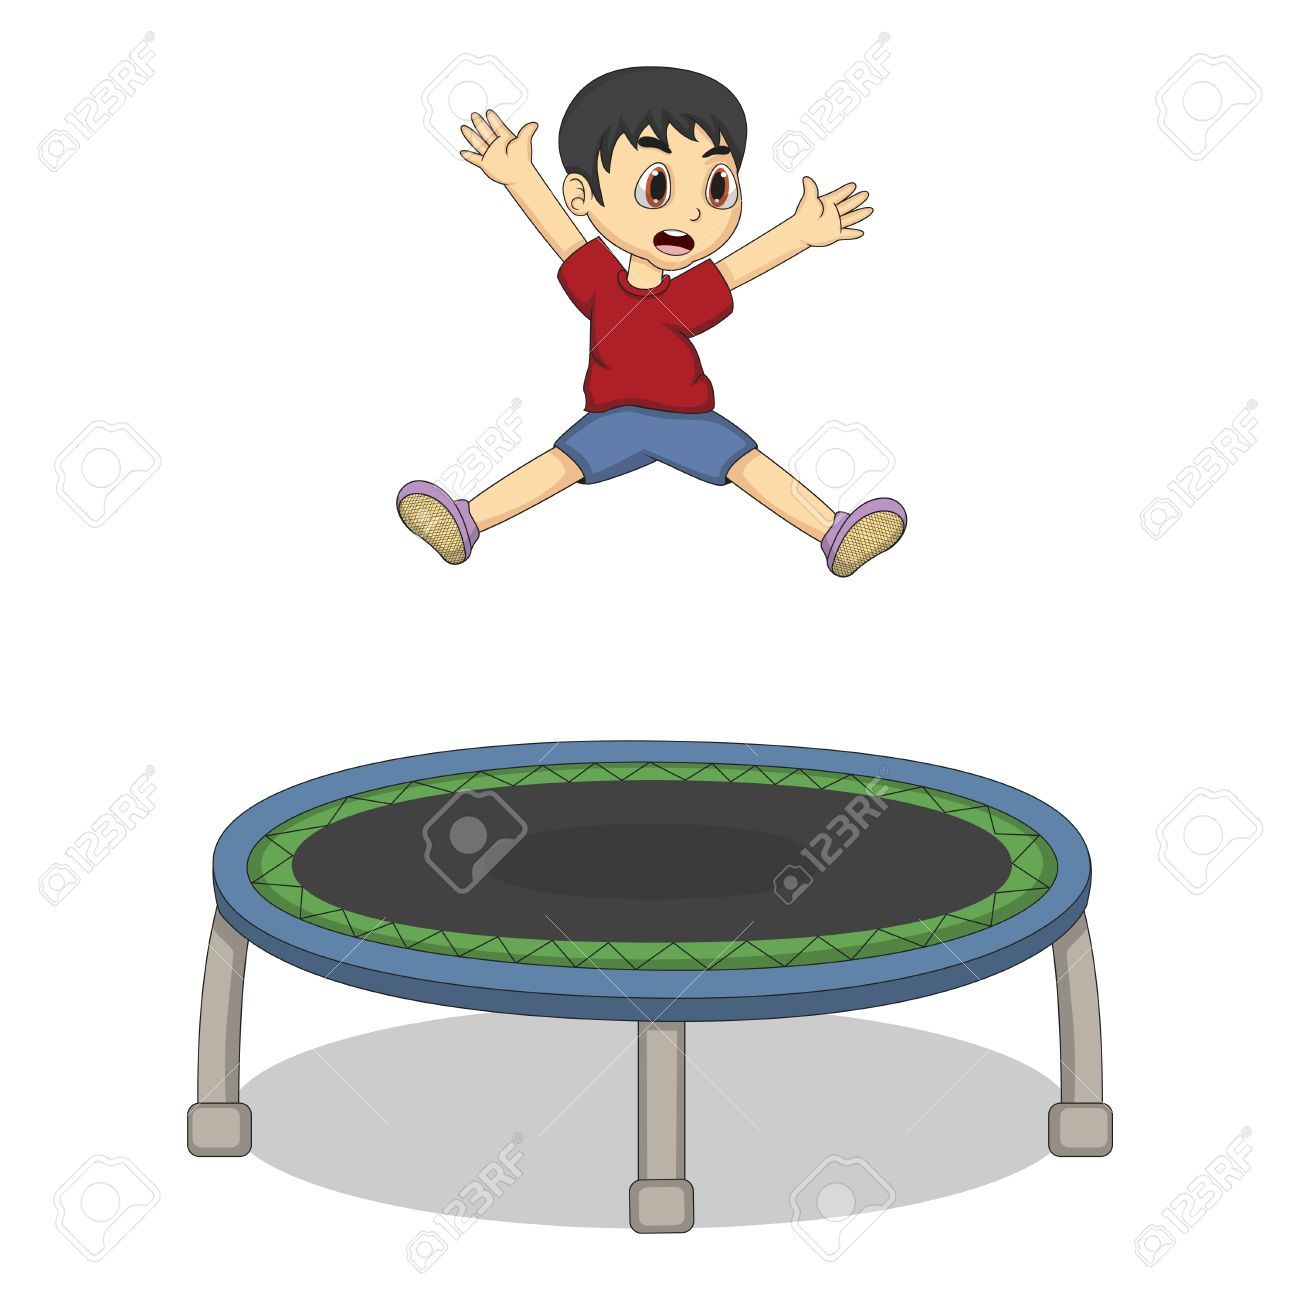 Trampline clipart graphic royalty free download Boy jumping on trampoline clipart 8 » Clipart Portal graphic royalty free download